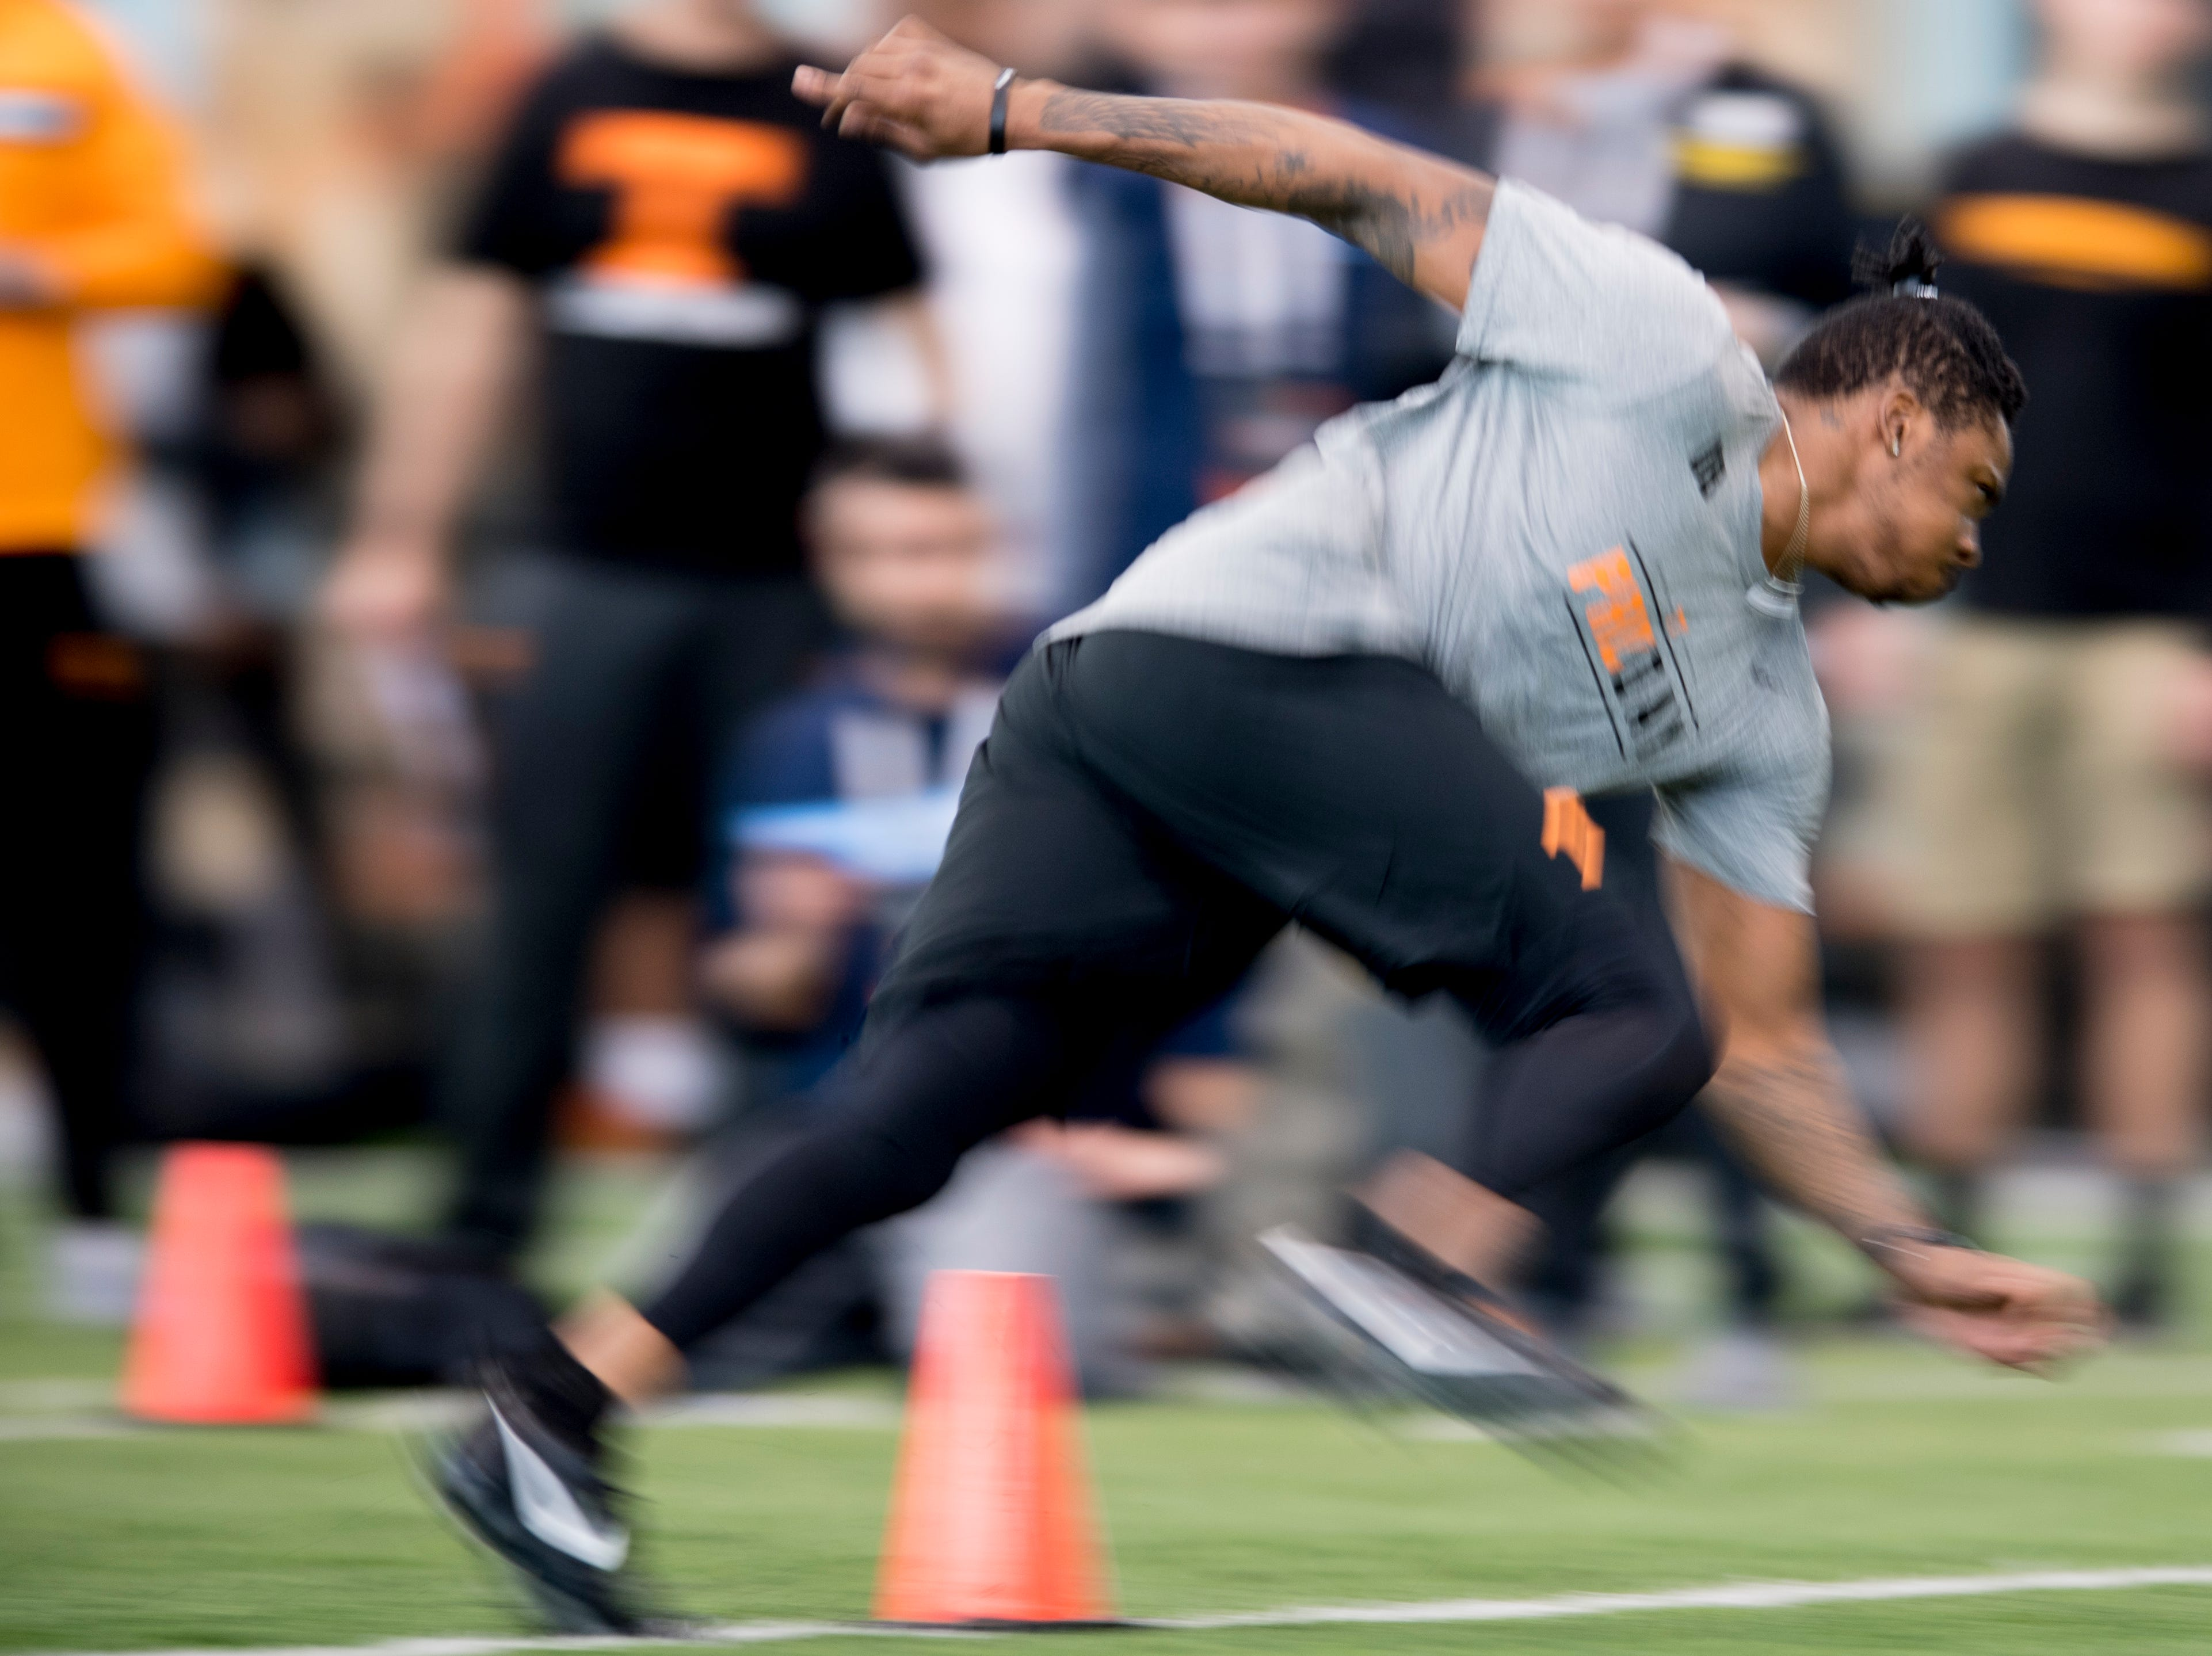 D.J. Henderson does the three-cone-drill at Tennessee Pro Day at Anderson Training Facility in Knoxville, Tennessee on Thursday, March 14, 2019. Draft prospects from Tennessee and other schools worked out before NFL scouts.